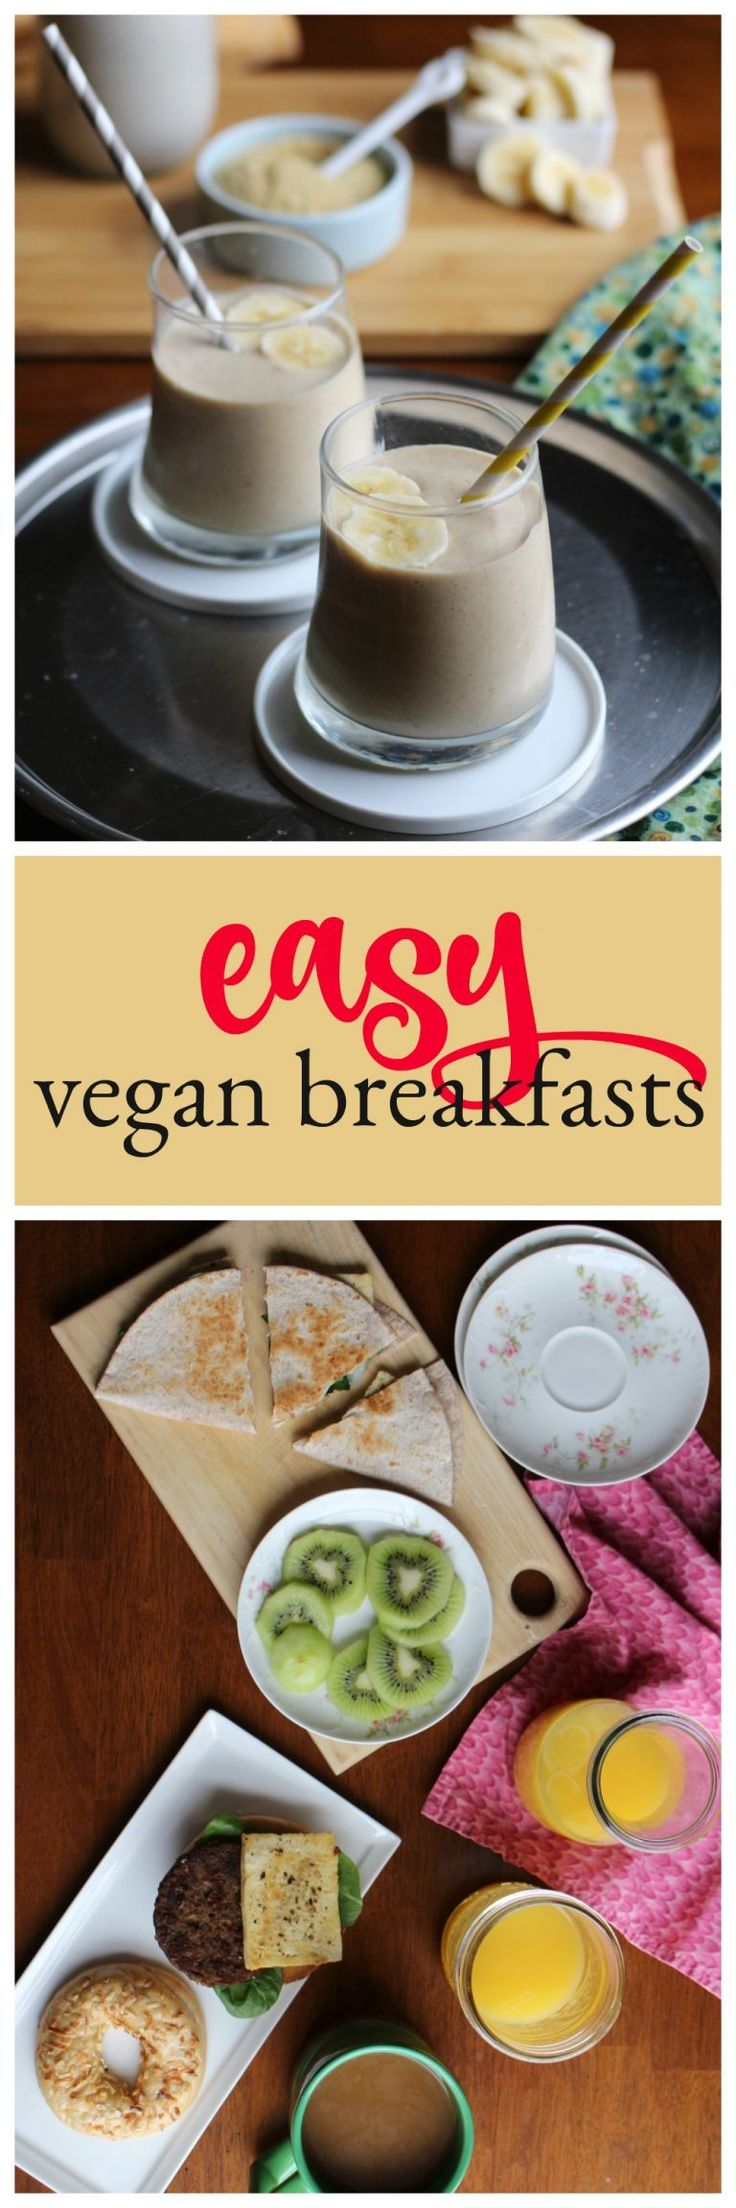 Being vegan doesn't have to be complicated! Here are some easy vegan breakfasts that anyone can make! #vegan #breakfast #easy via @cadryskitchen